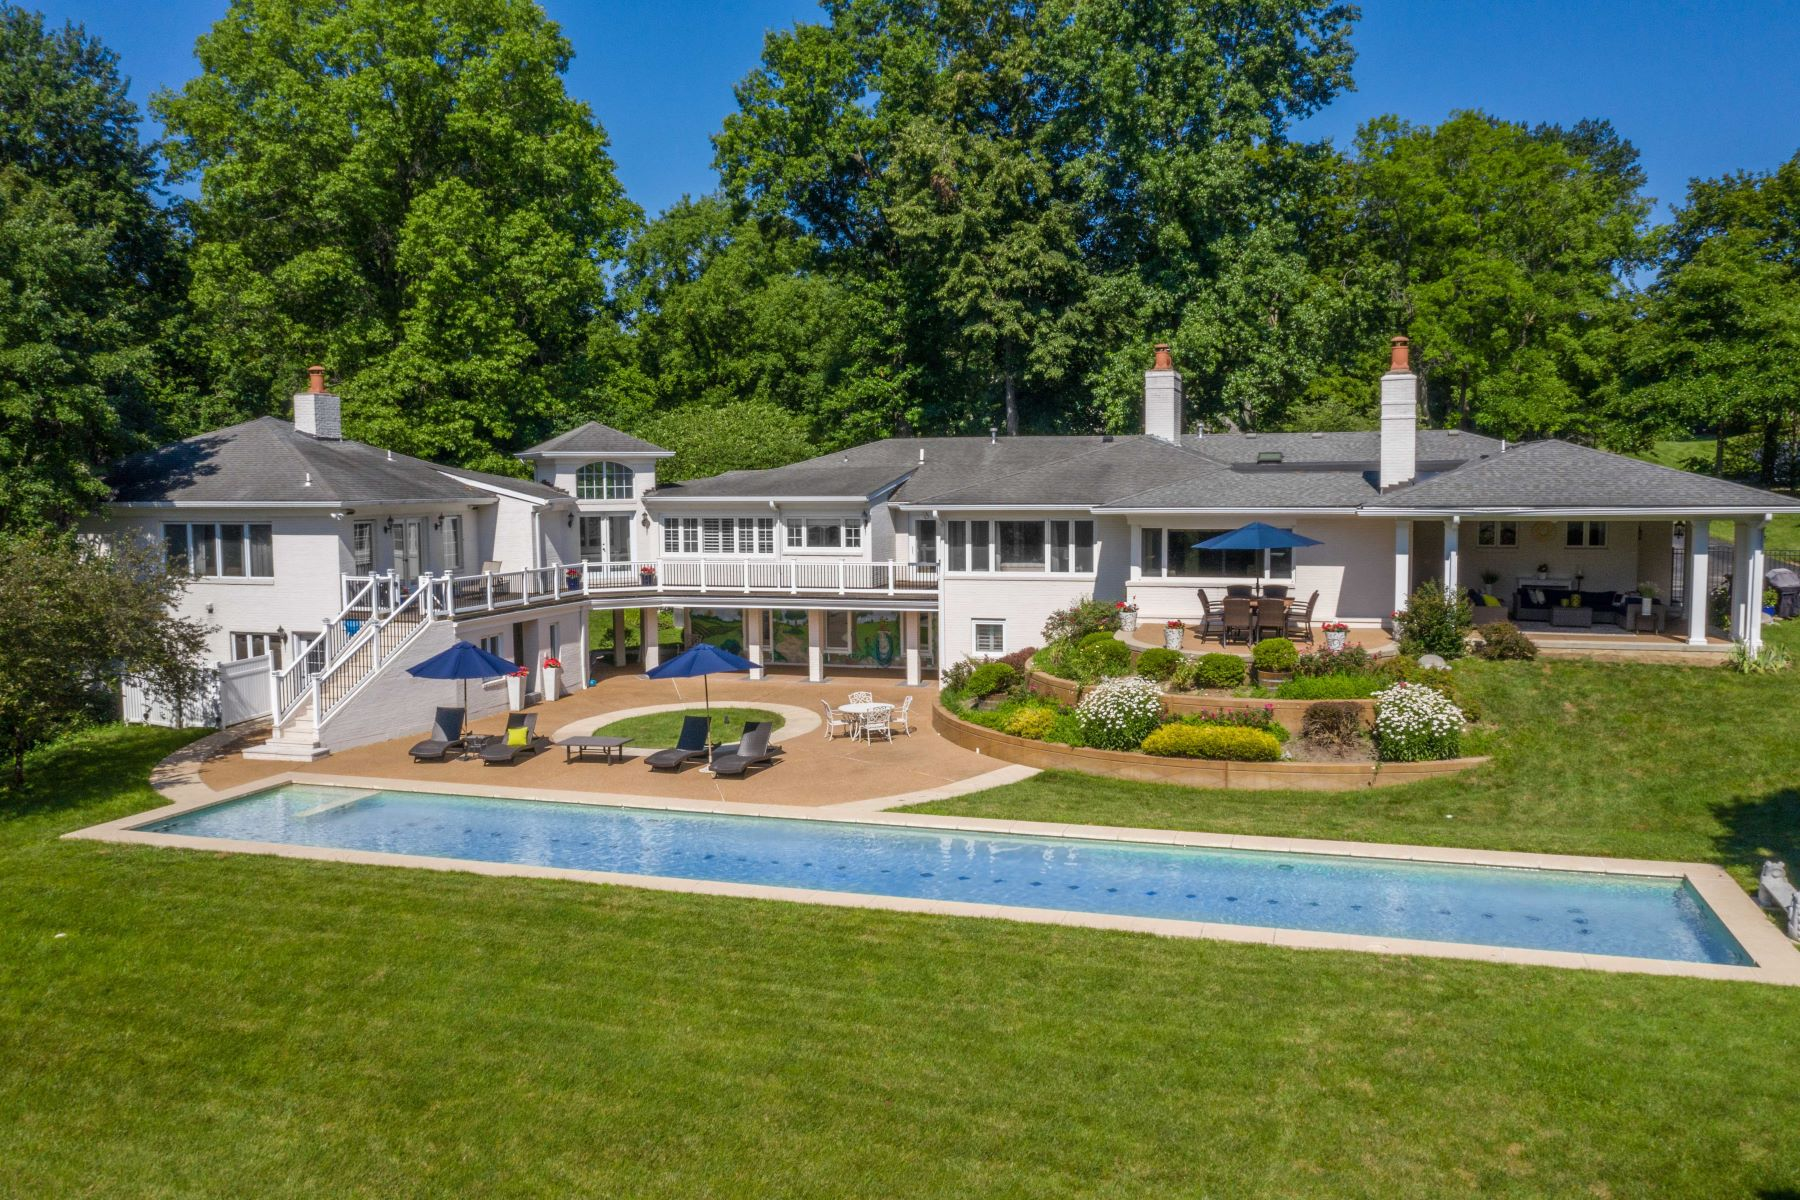 Single Family Homes for Sale at Exquisite Estate Nestled on over 3 Lush Acres in Ladue 16 Overbrook Drive Ladue, Missouri 63124 United States